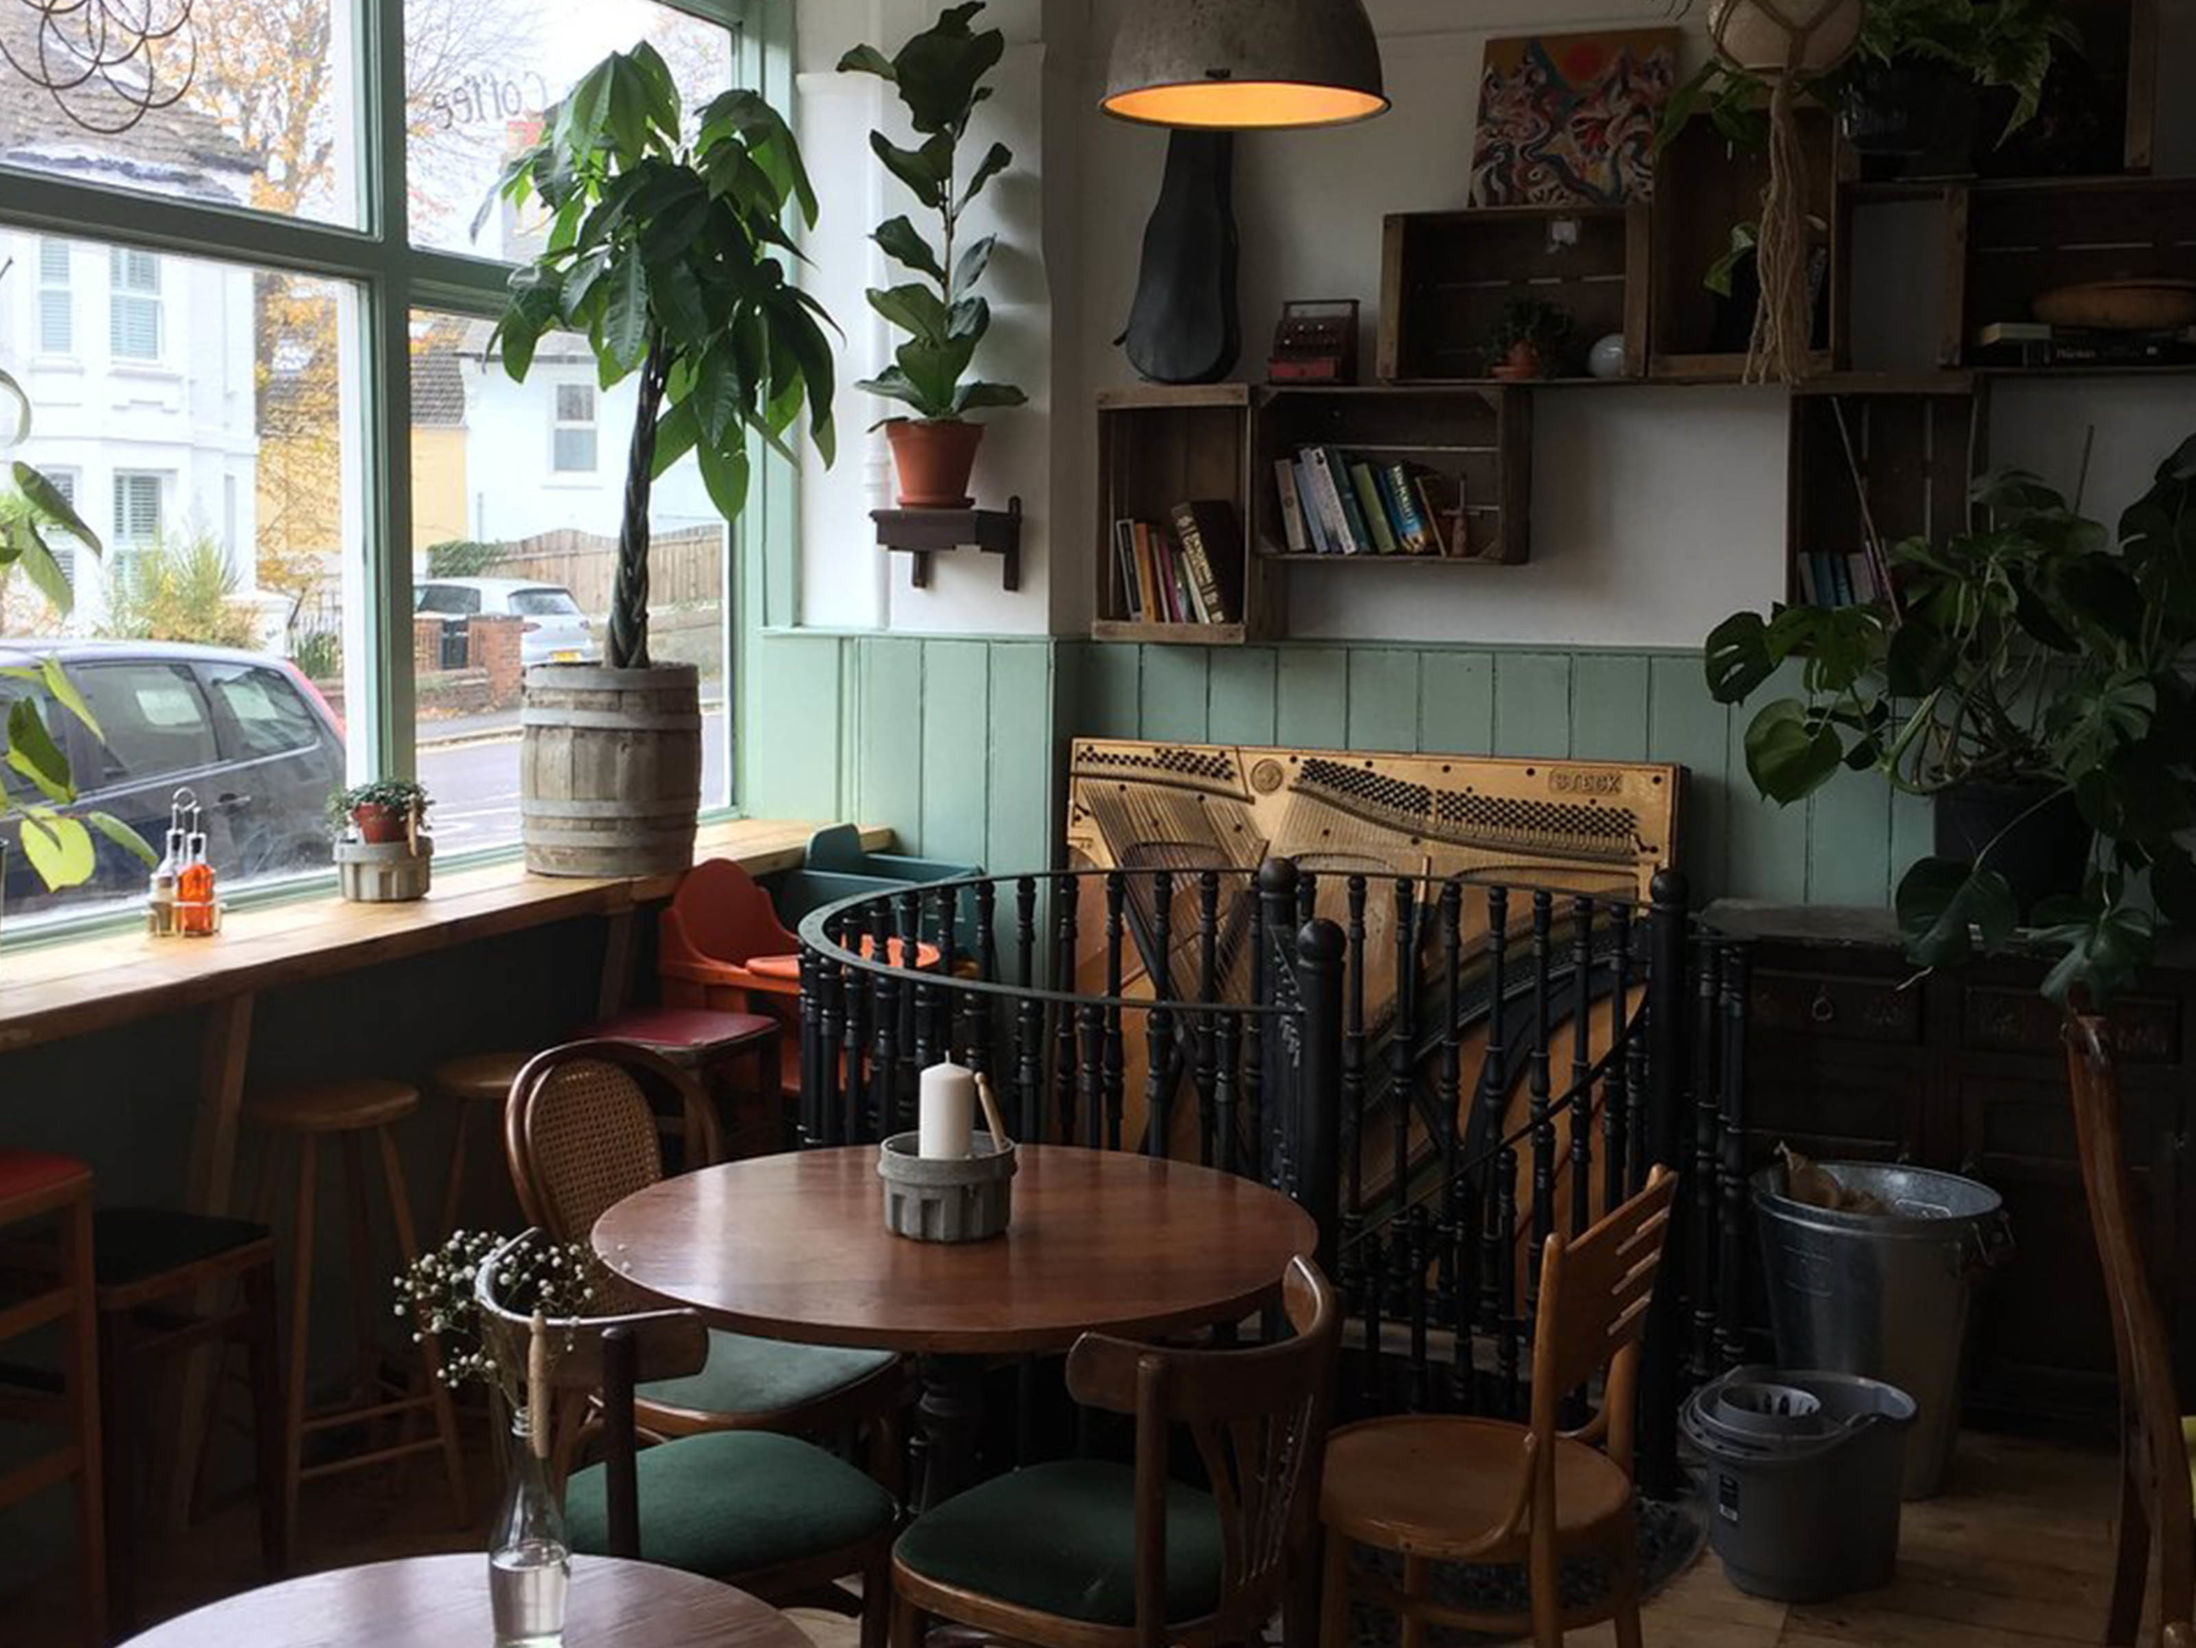 Best Vegan Restaurants in Brighton - The Roundhill